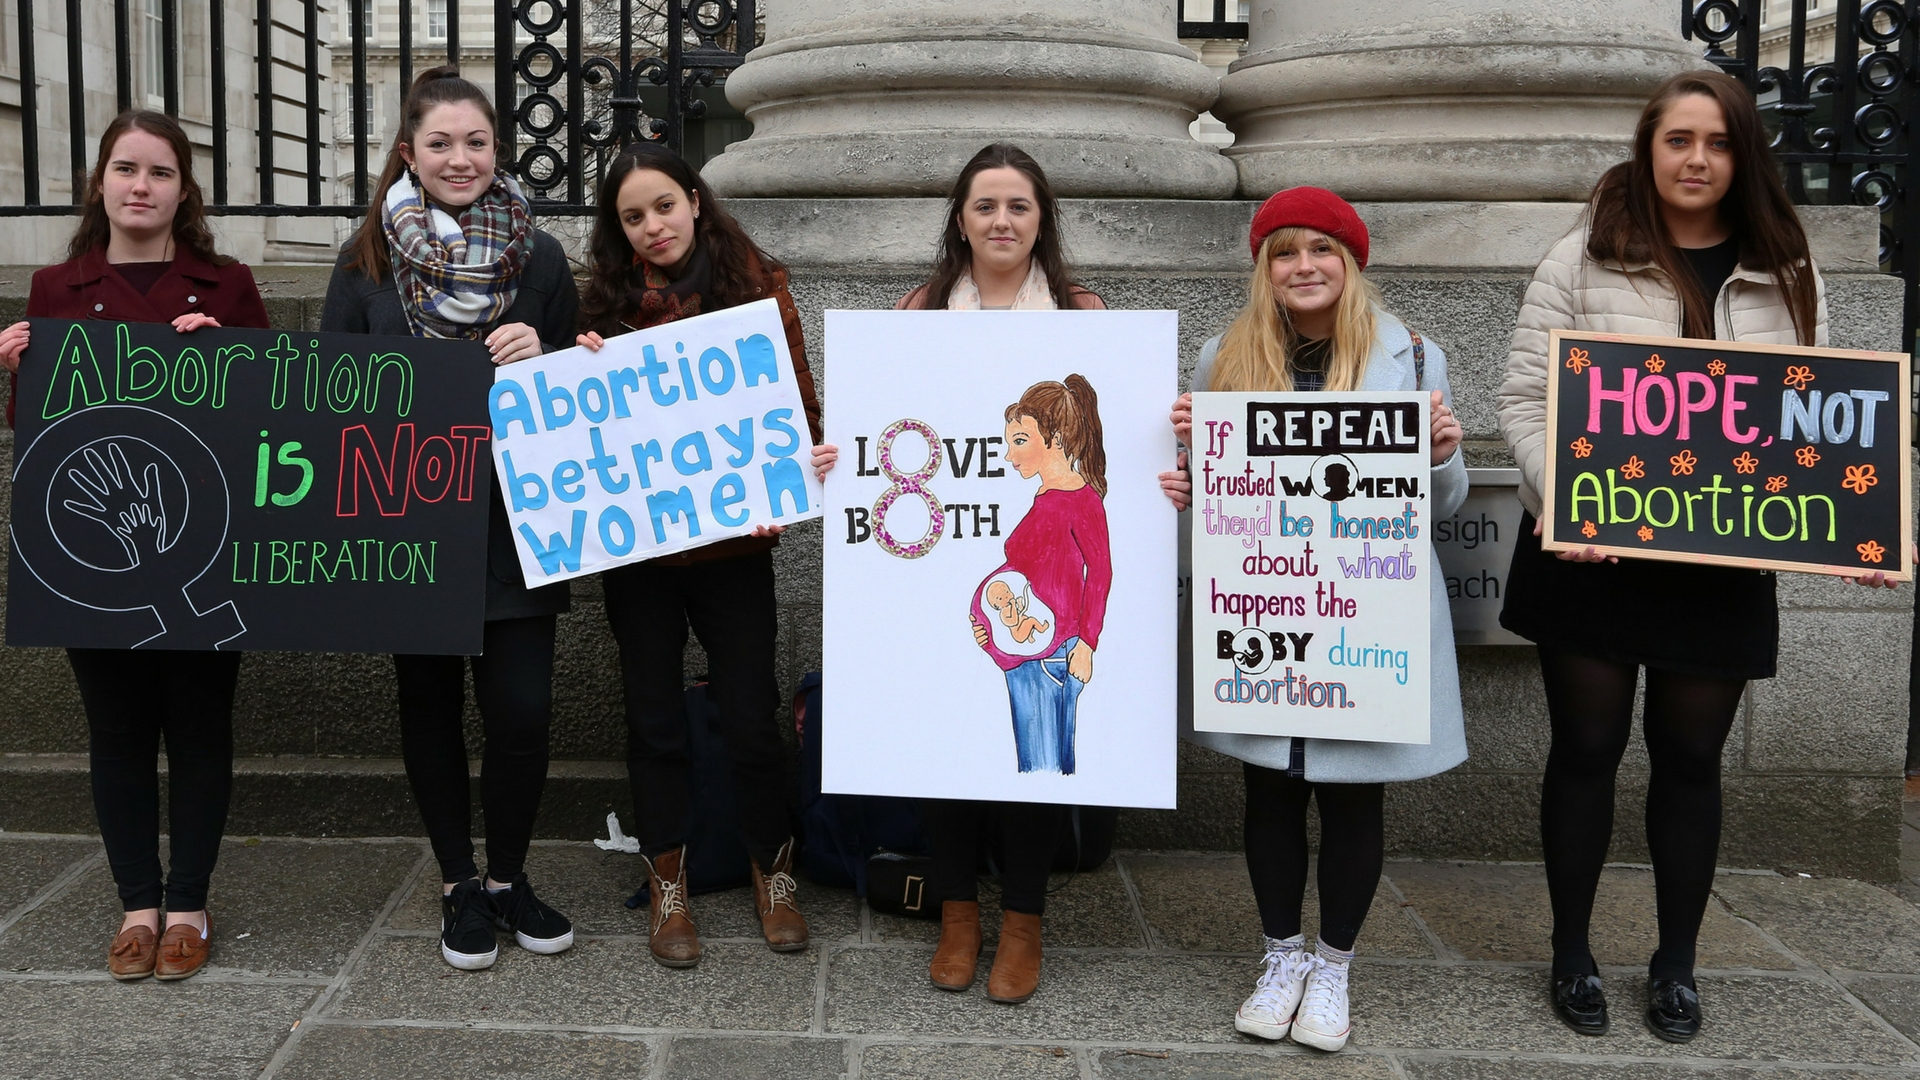 08.03.2018: Sad to see government hijack International  Women's Day to push for abortion – PLC